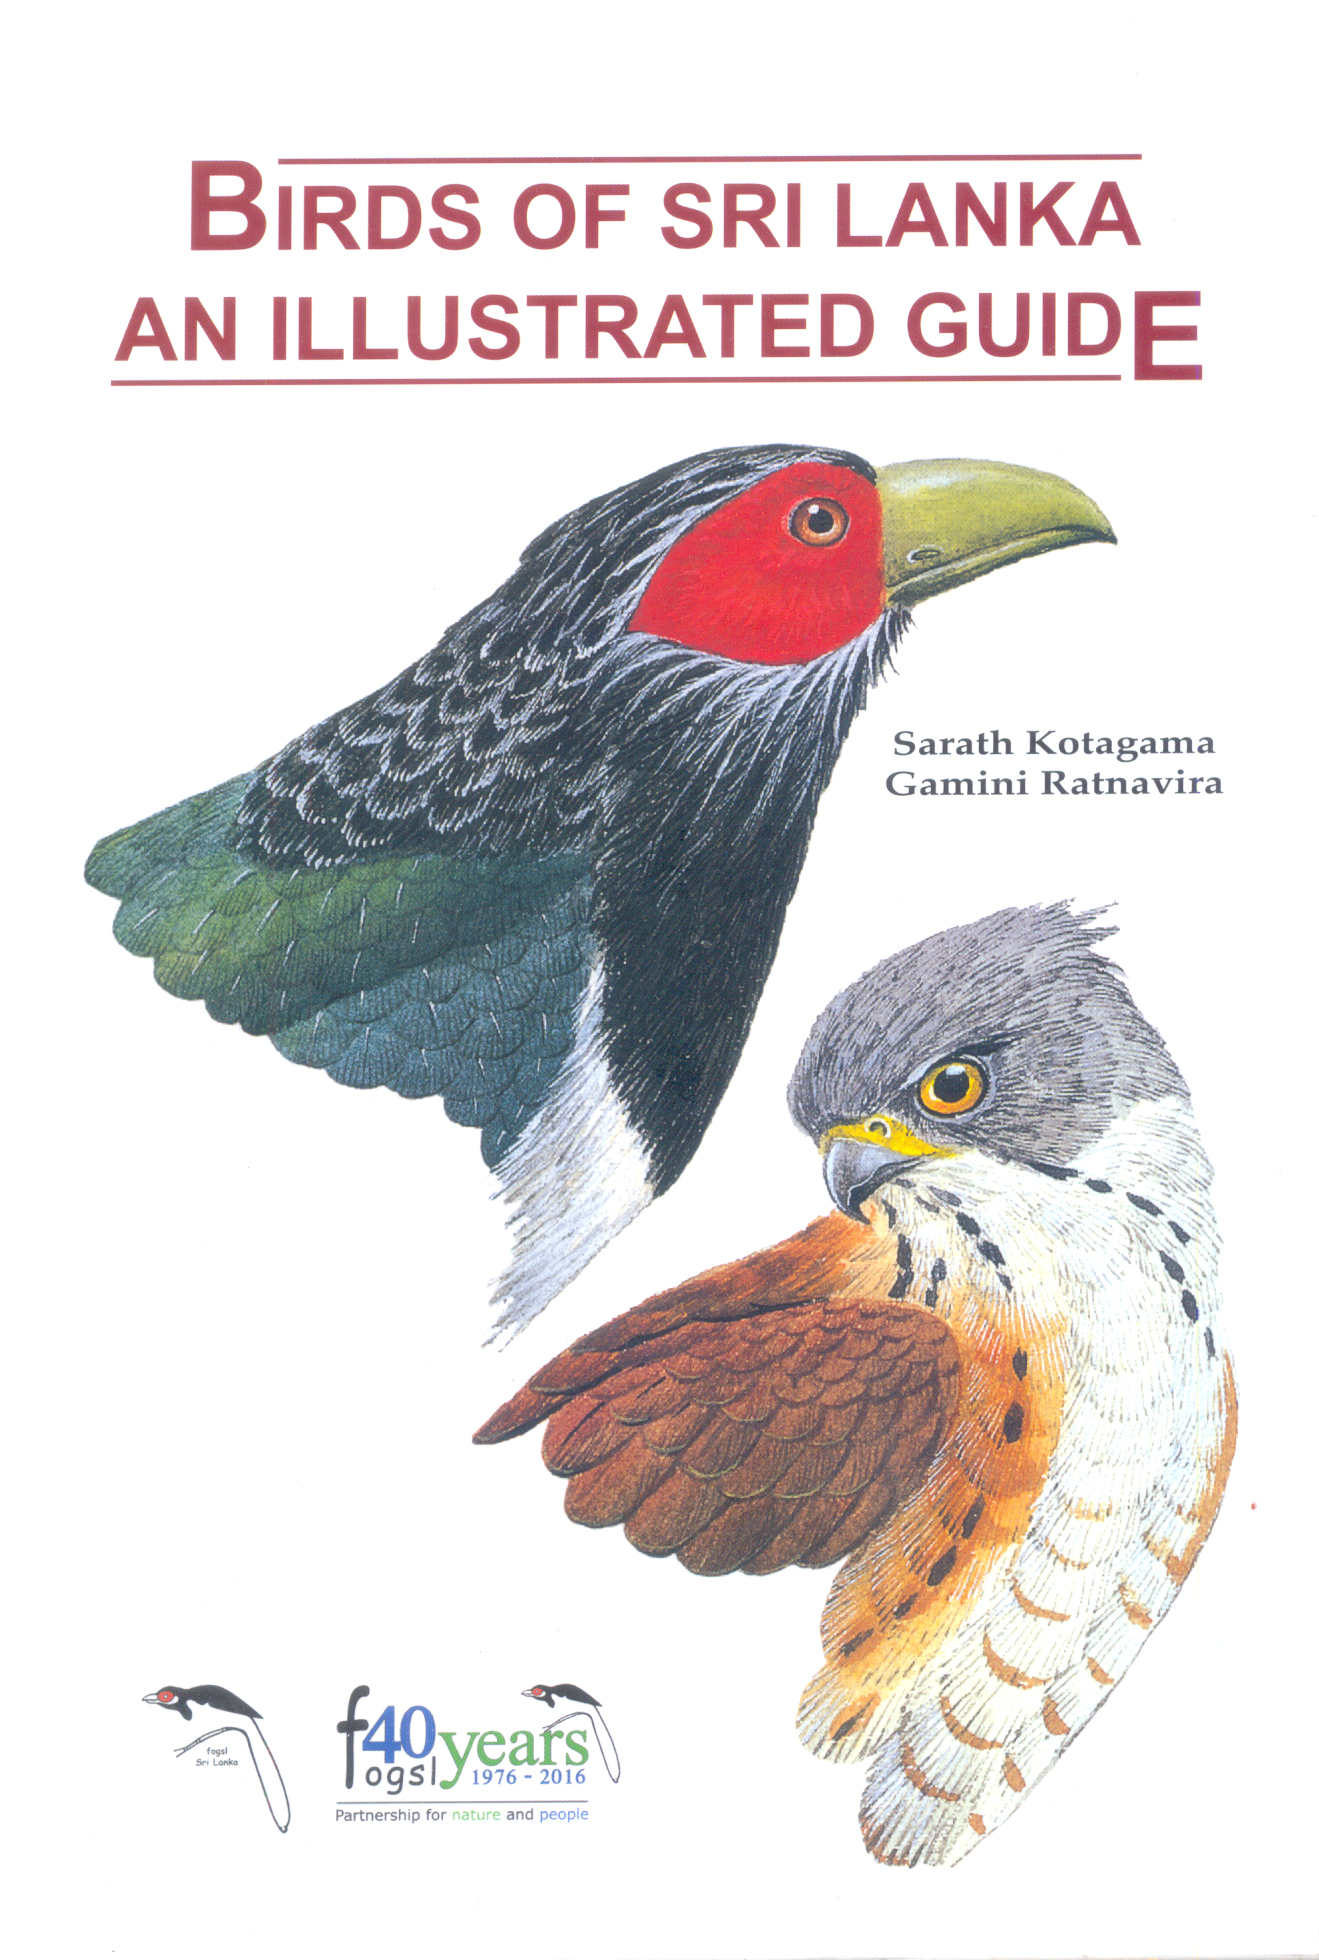 Birds of Sri Lanka An Illustrated Guide